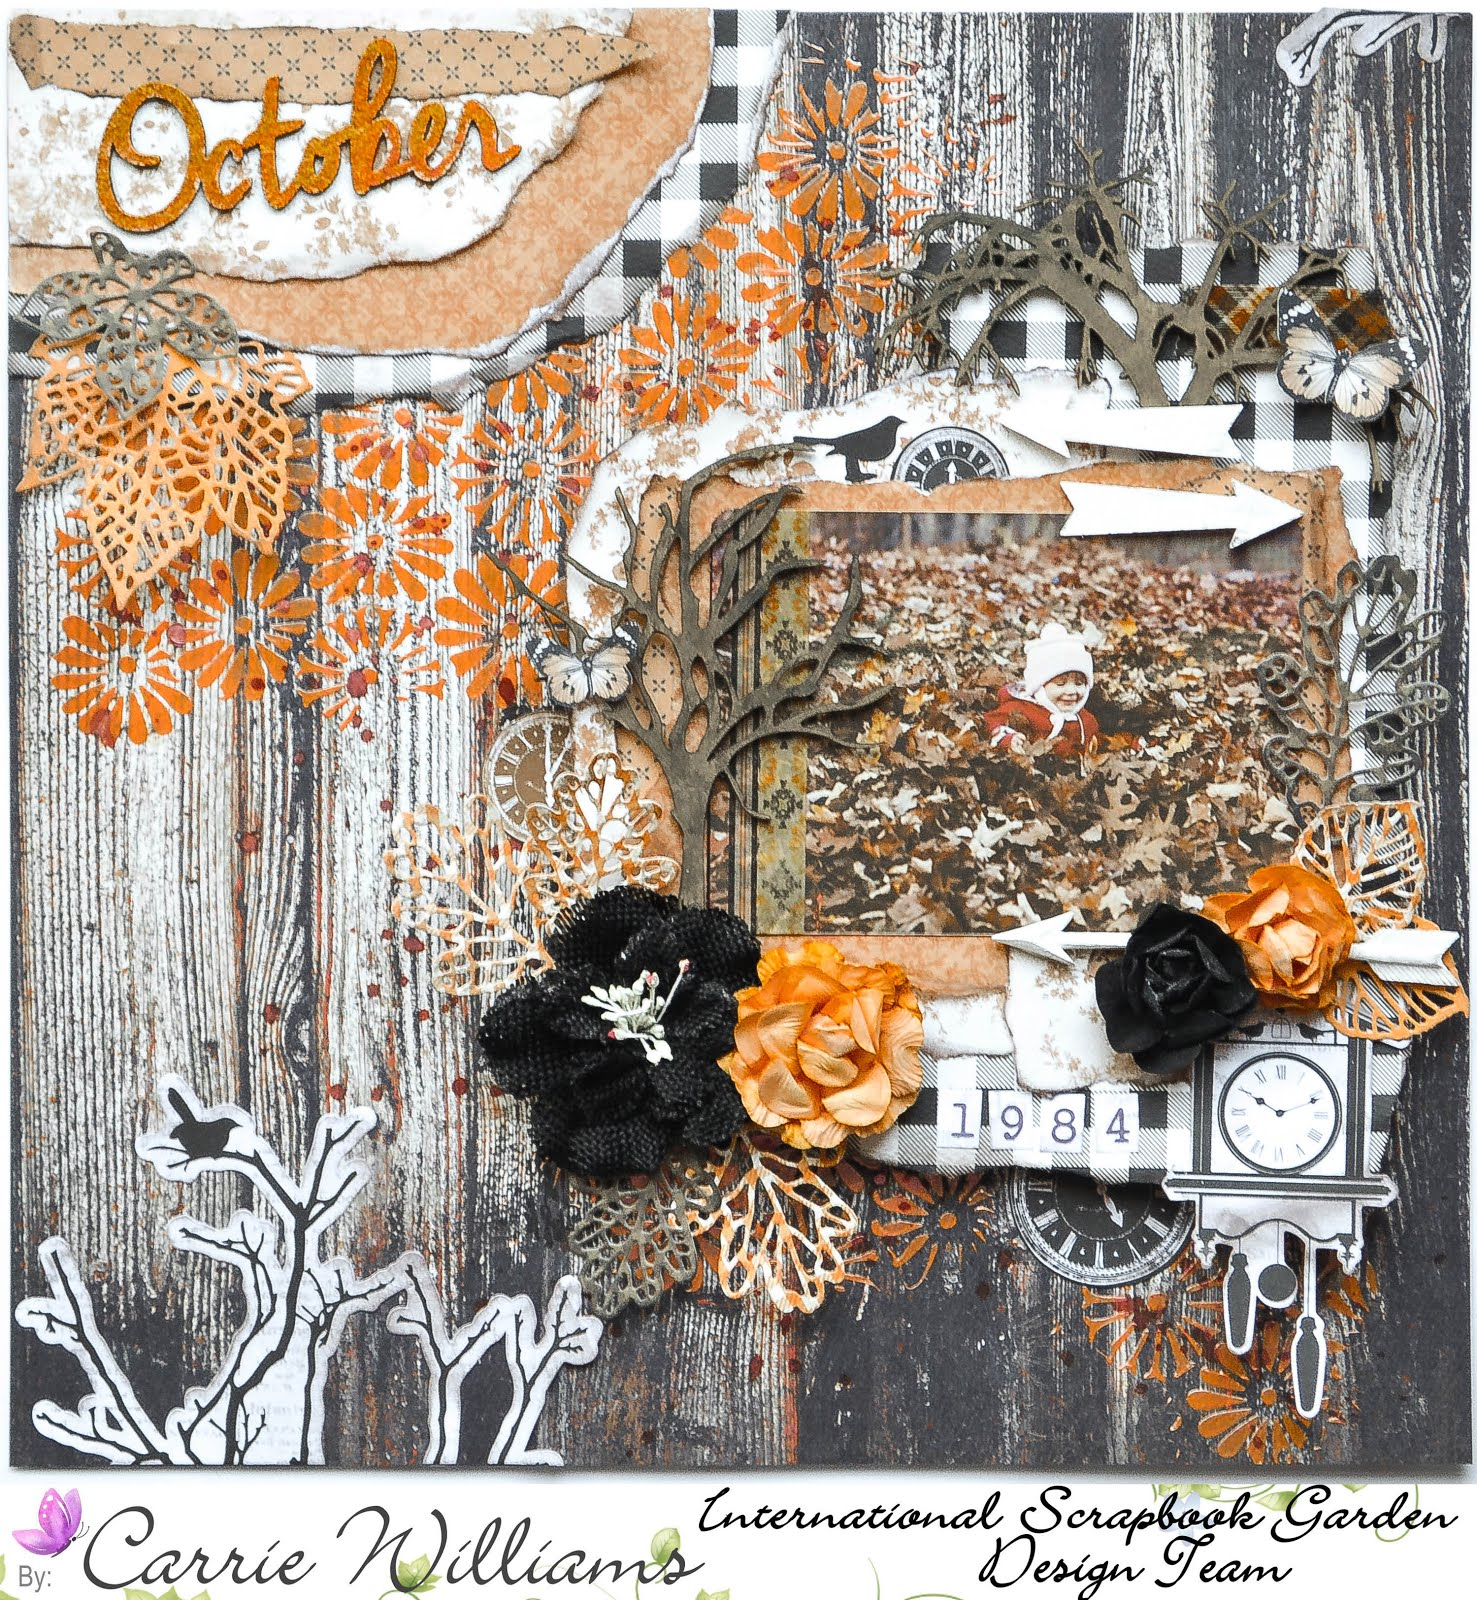 October mixed media autumn fall scrapbook layout on in orange, brown, and black on wood grain background with flowers by Kaisercraft and Petaloo, with background stenciling with Dreamsicle texture paste, torn paper layers, and Prima die cut leaves  with chipboard by Creative Embellishments